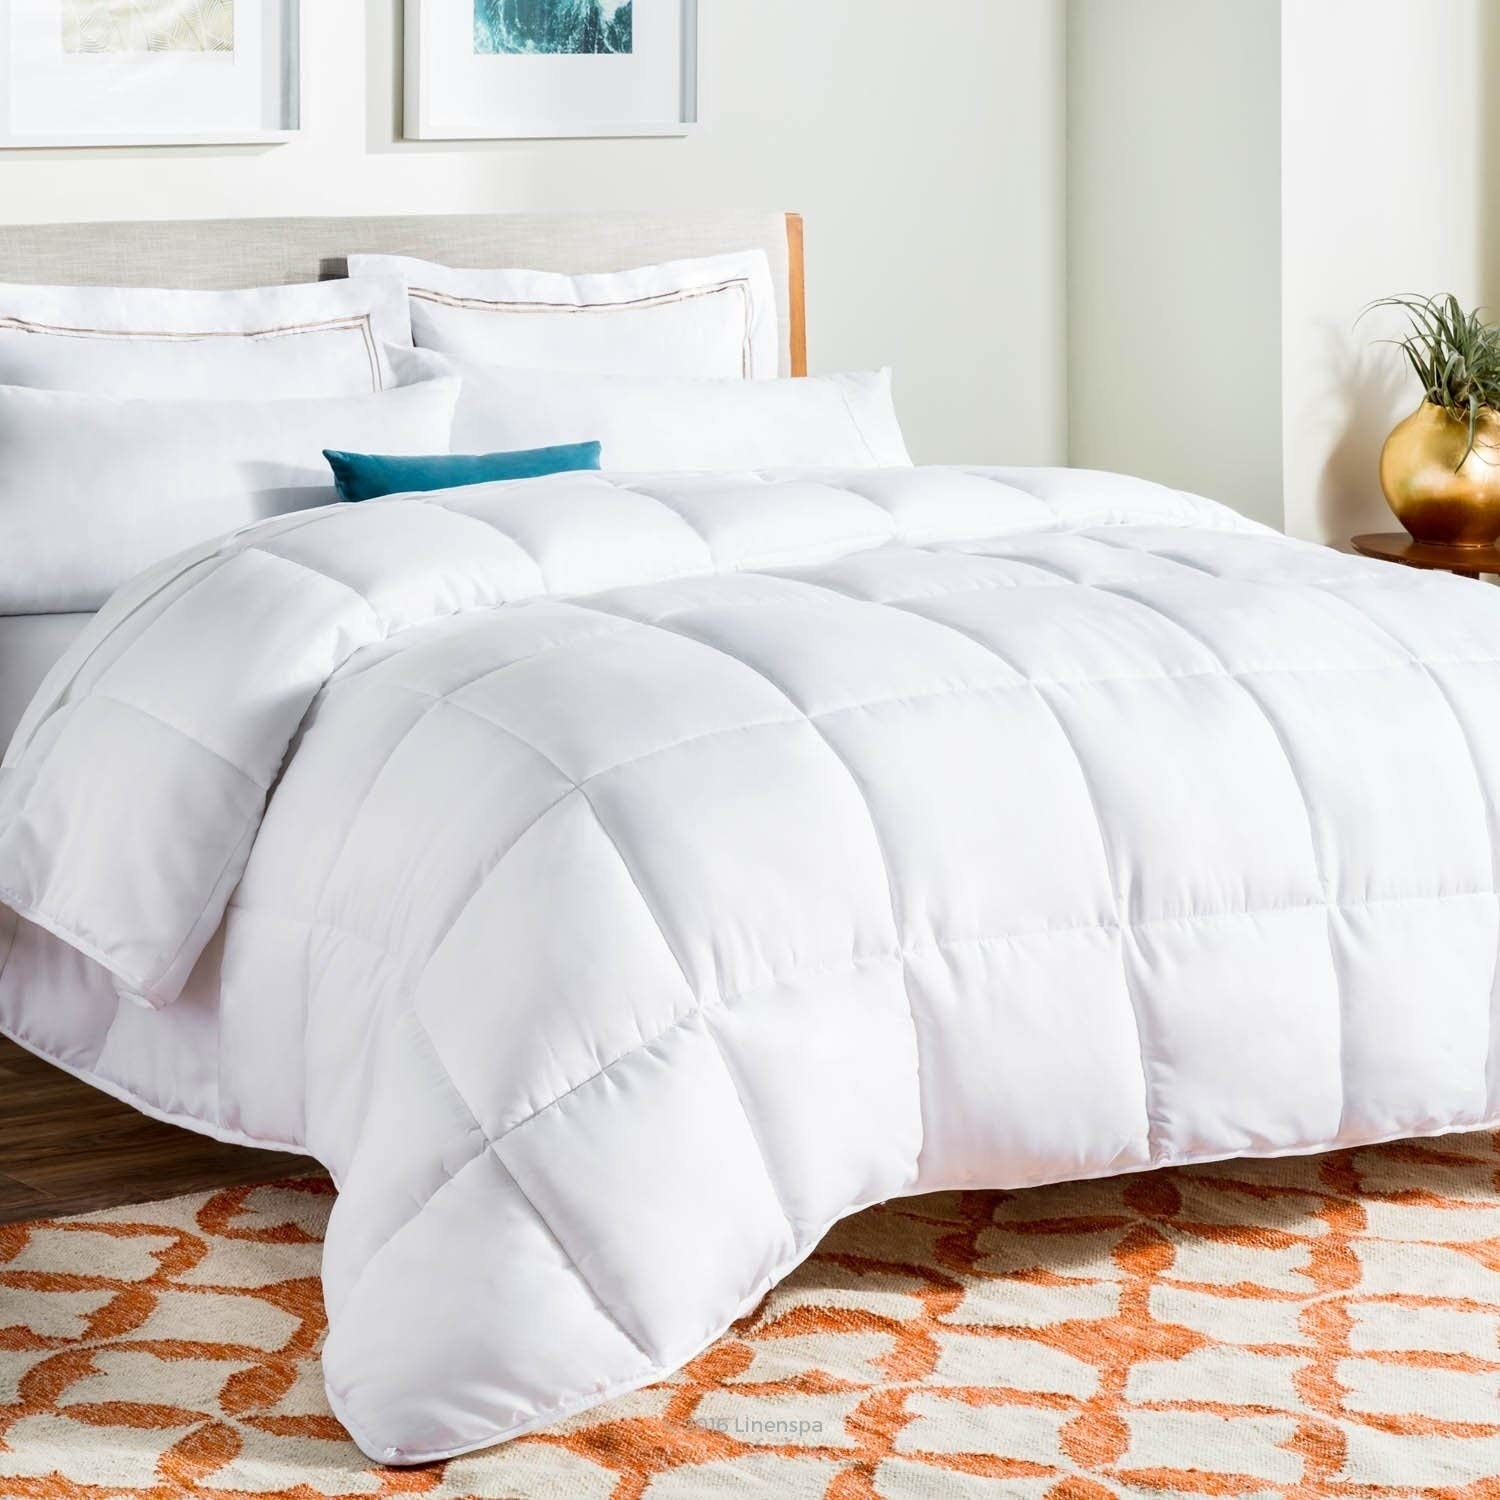 The quilted duvet insert on a bed